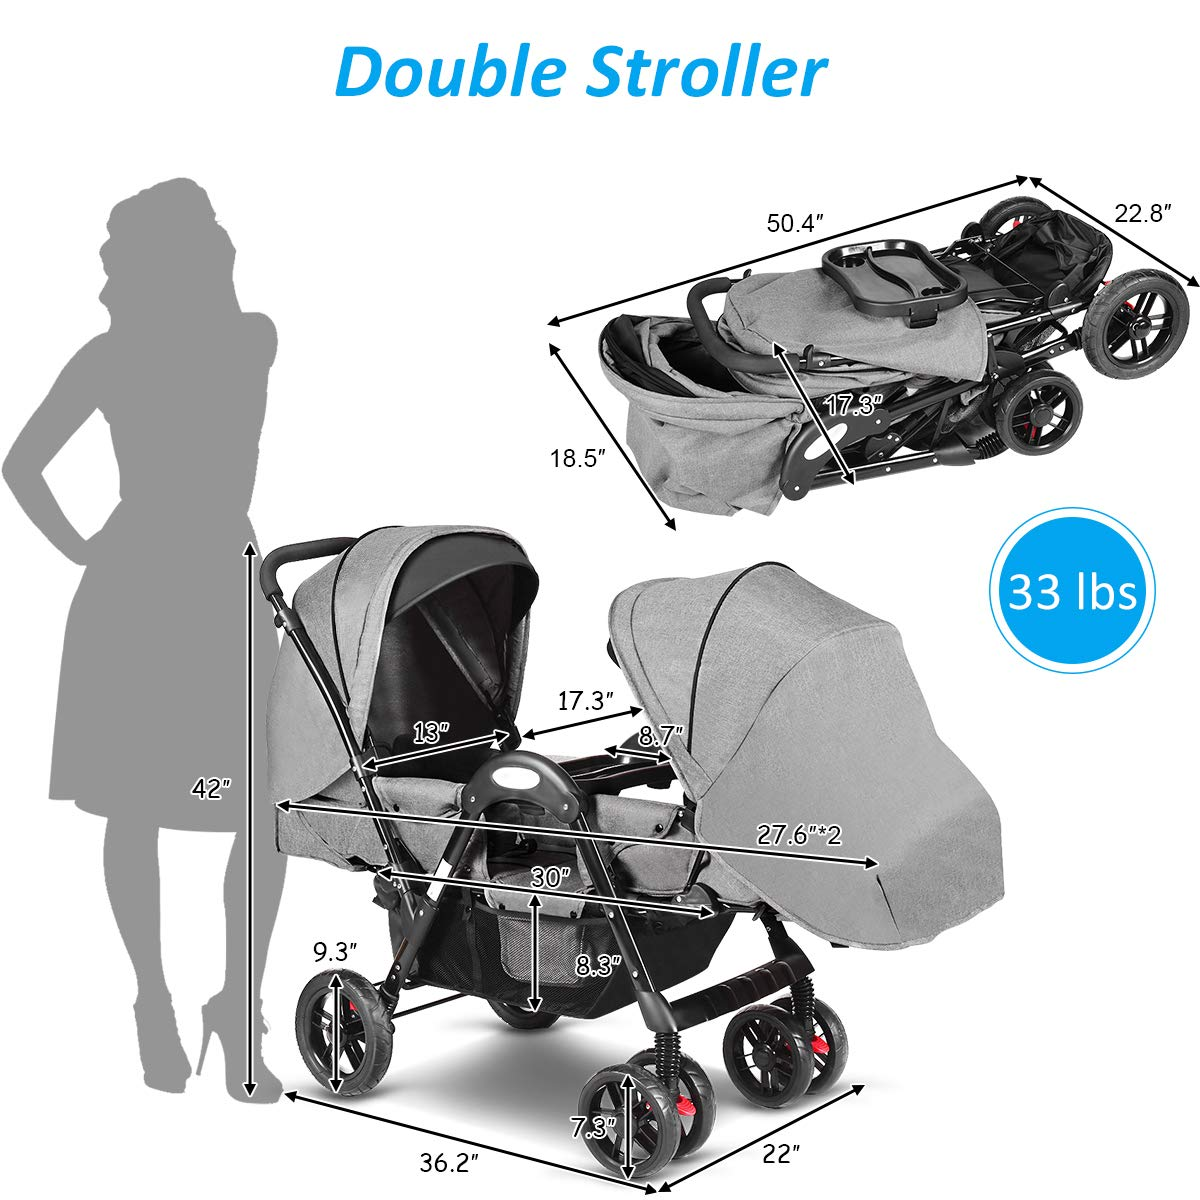 Costzon Double Stroller, Baby Face to Face Carriage with Sleep/Sit/Recline Seat, 5-Point Safety Harness, Detachable Food Tray, Large Storage Space, Gray by Costzon (Image #4)